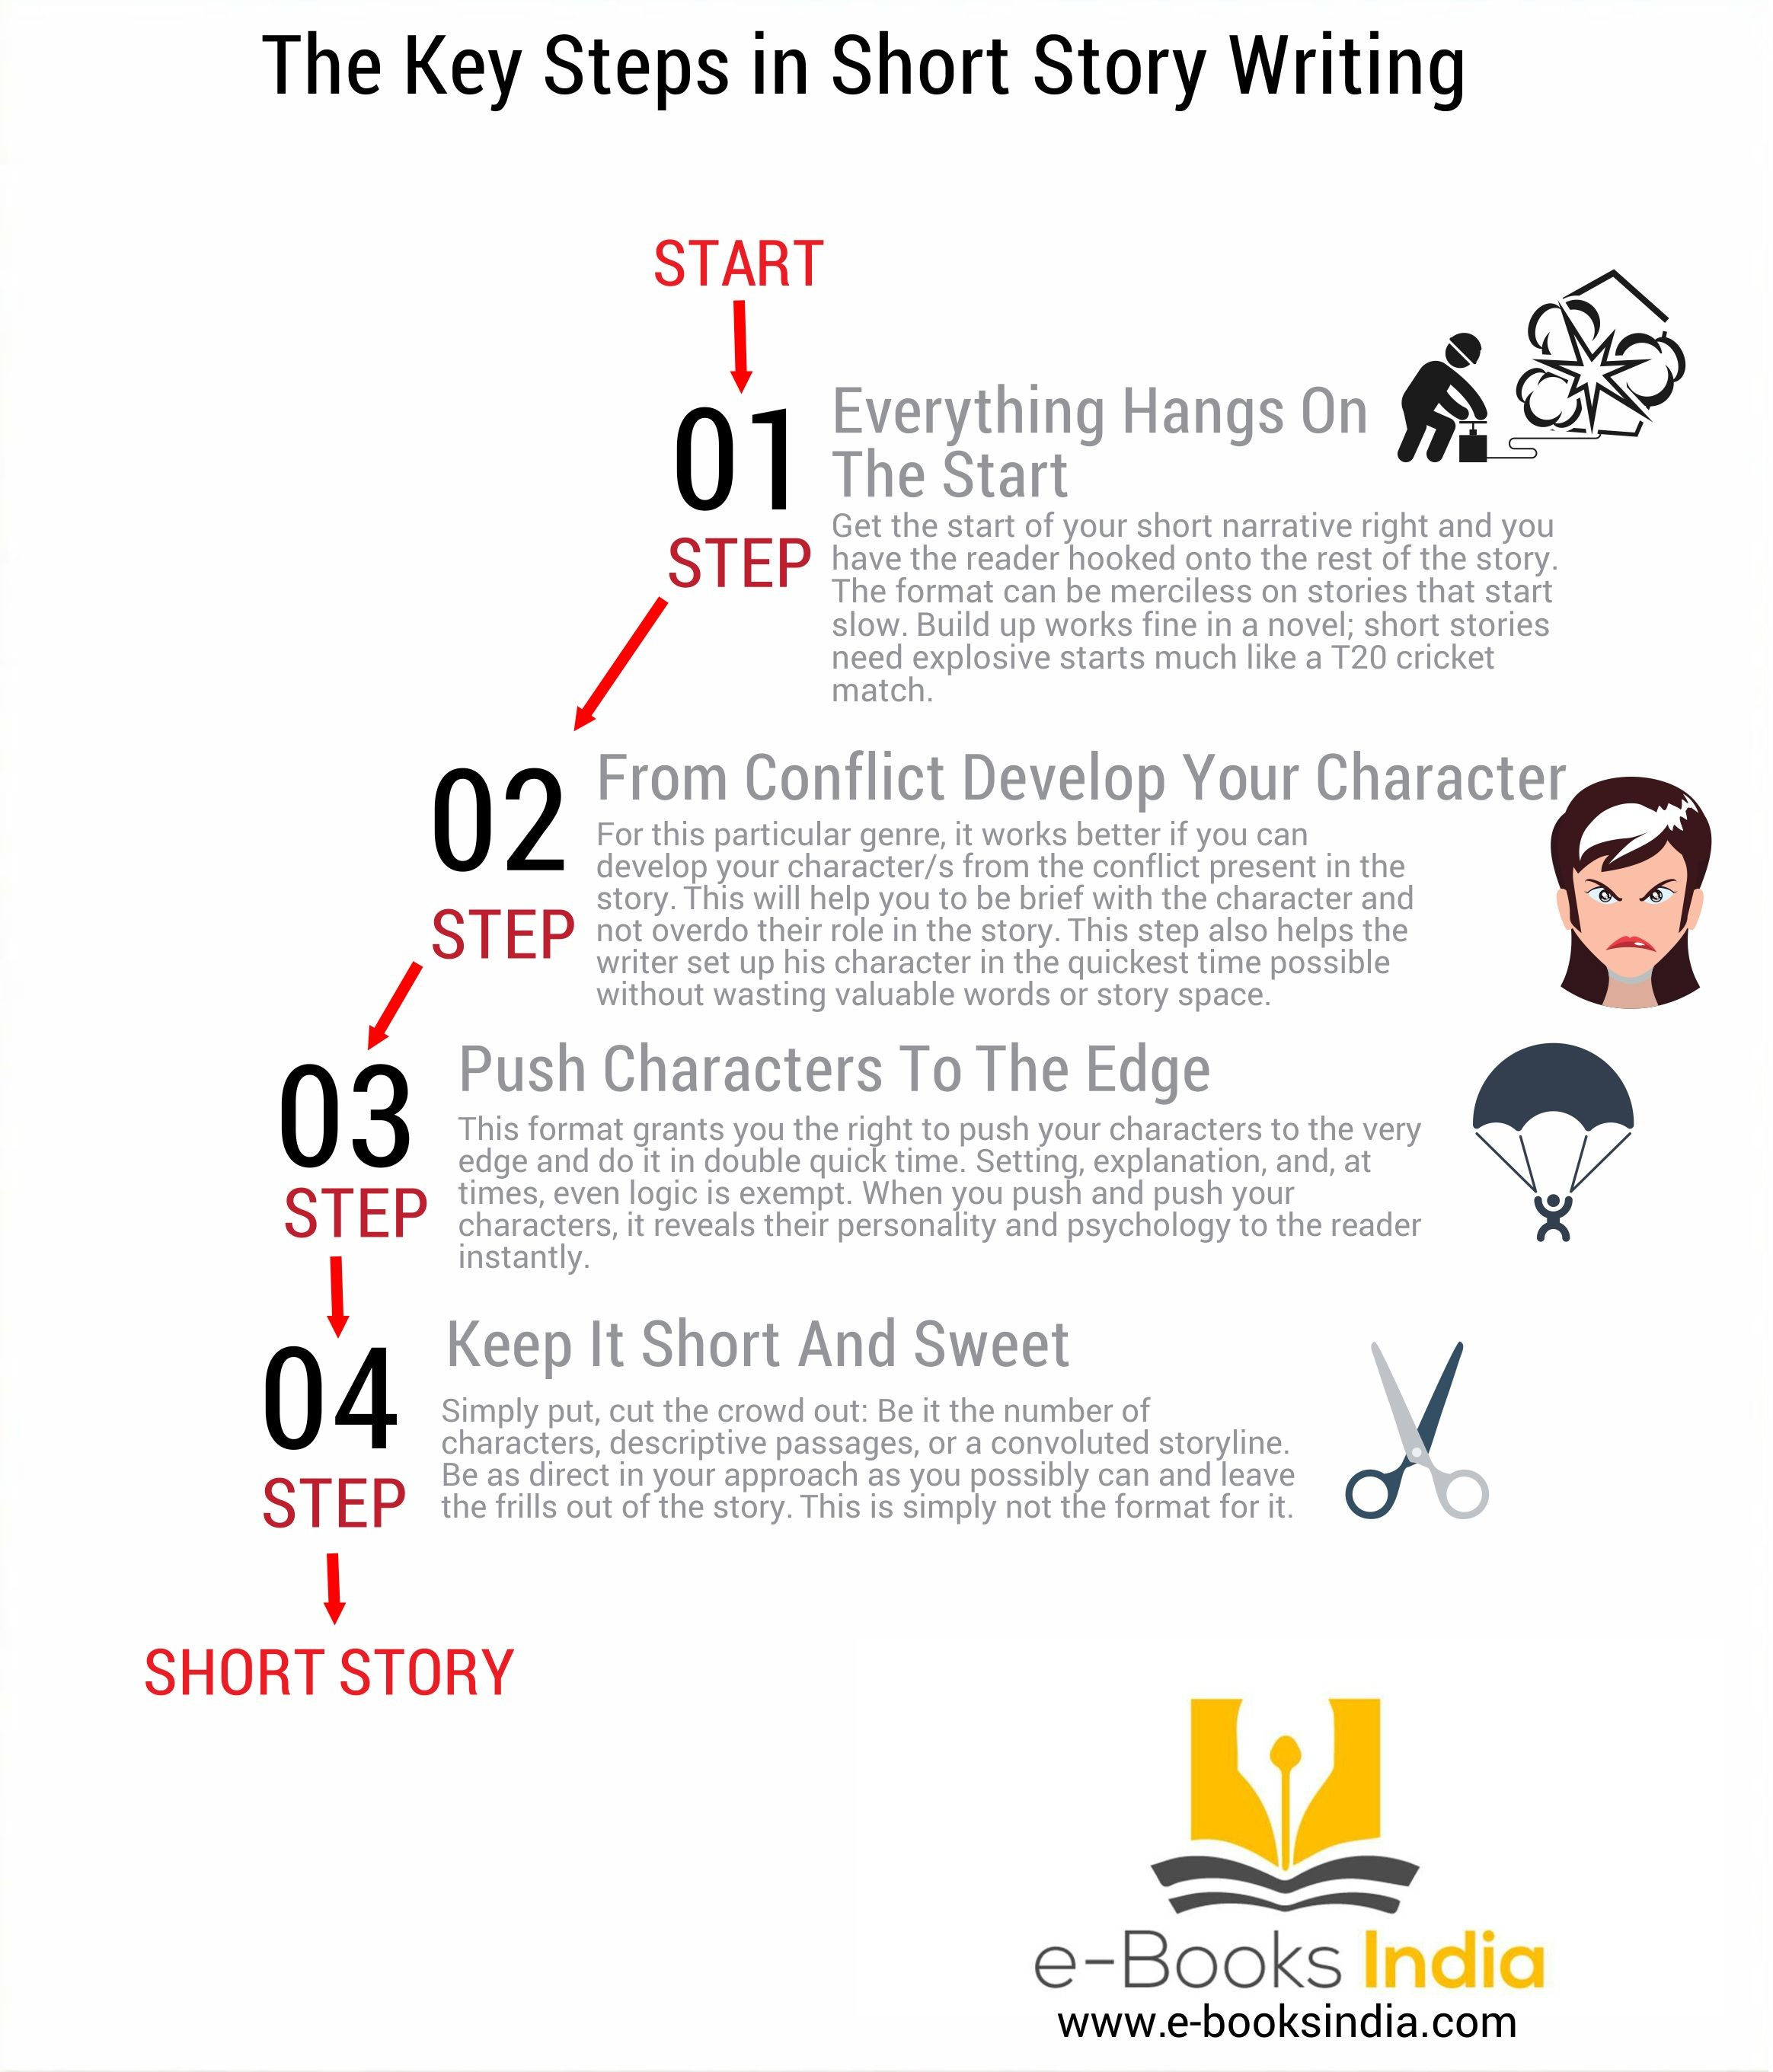 The Key Steps in Short Story Writing [Infographic] - http